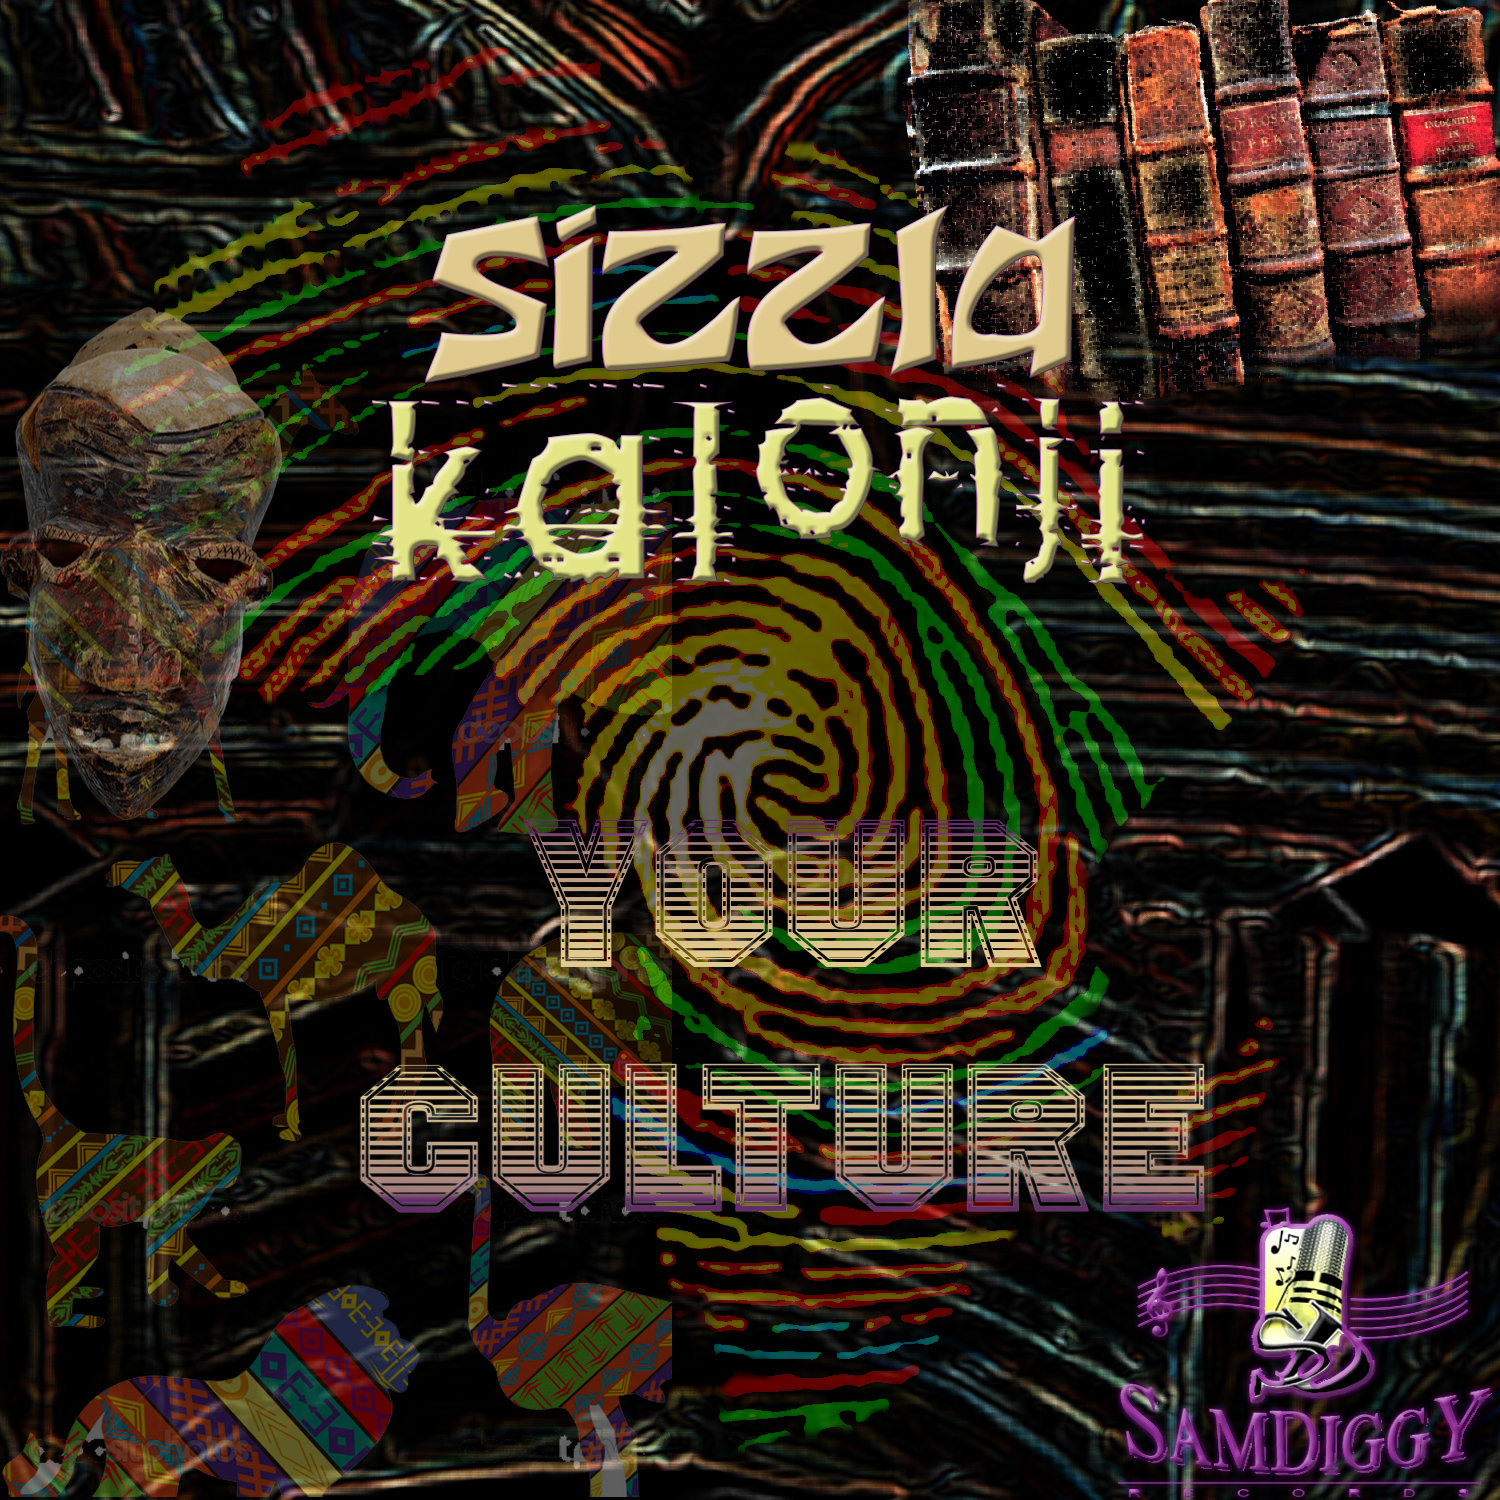 Sizzla Kalonji - Your Culture